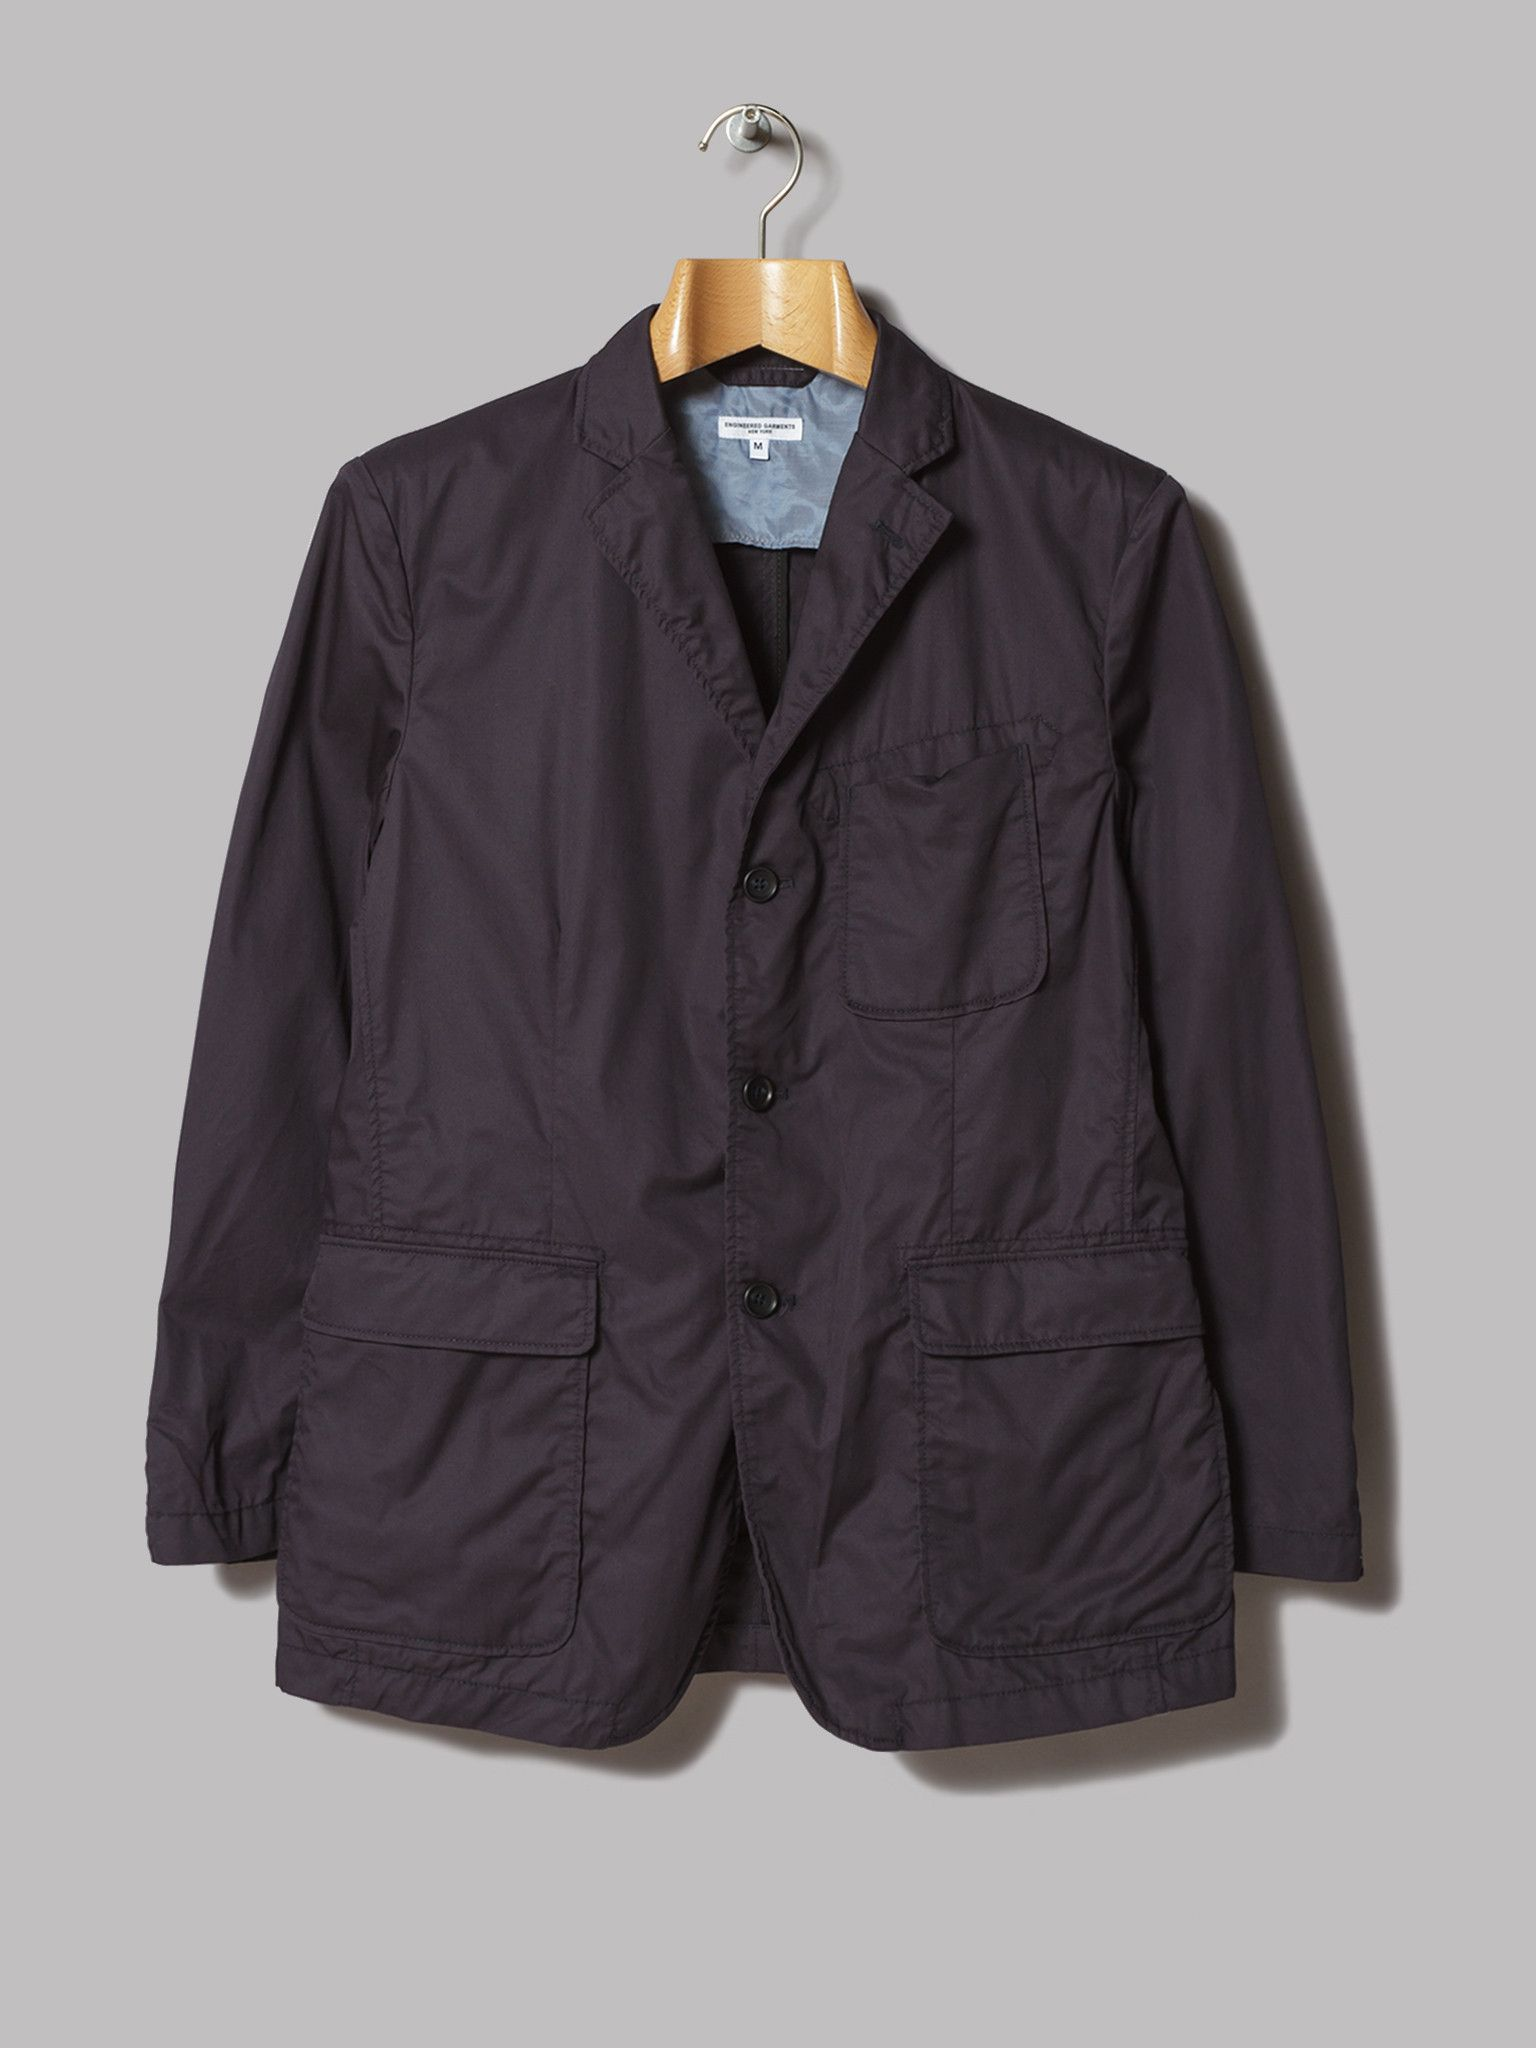 engineered garments baker jacket engineered garments aviator jacket